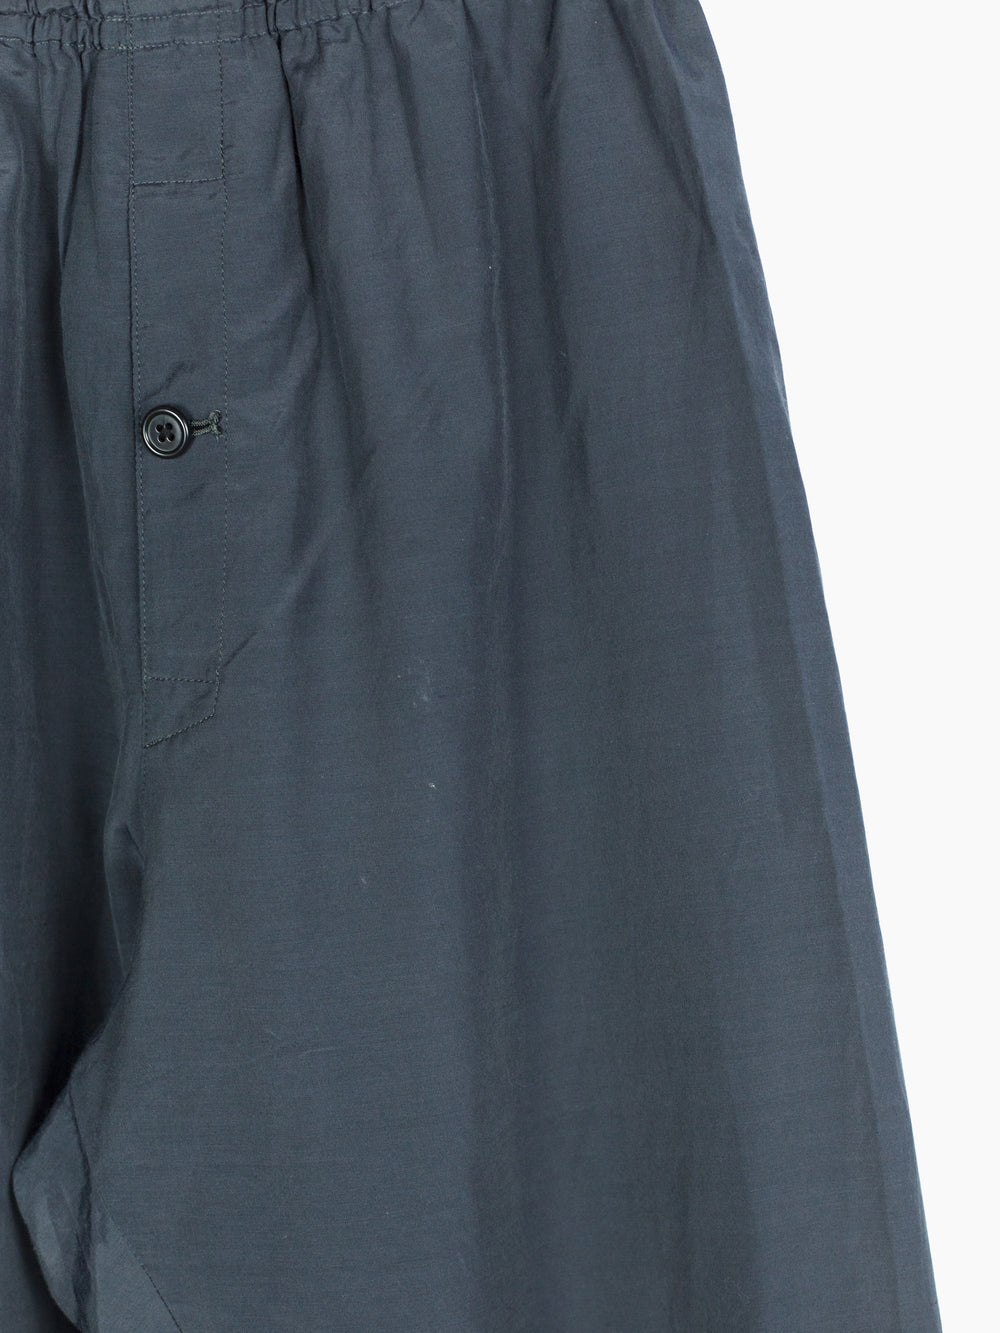 Yohji Yamamoto Pour Homme 90s Lining Easy Trousers